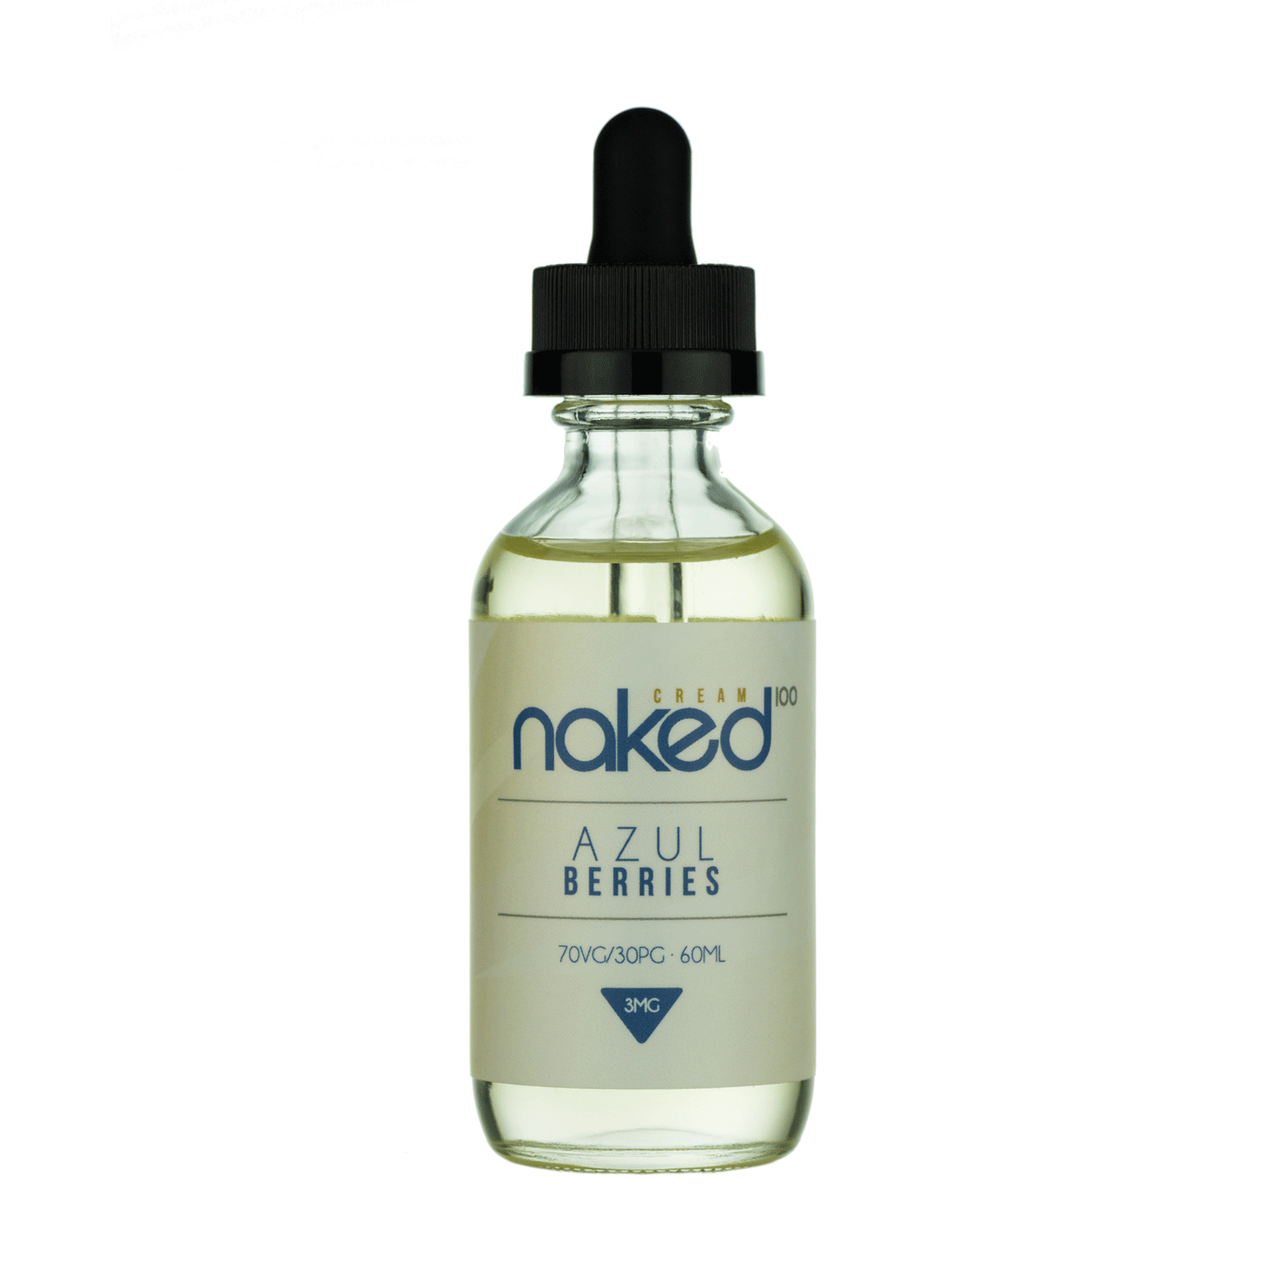 NAKED 100 Azul Berries 60ml Ejuice 3mg